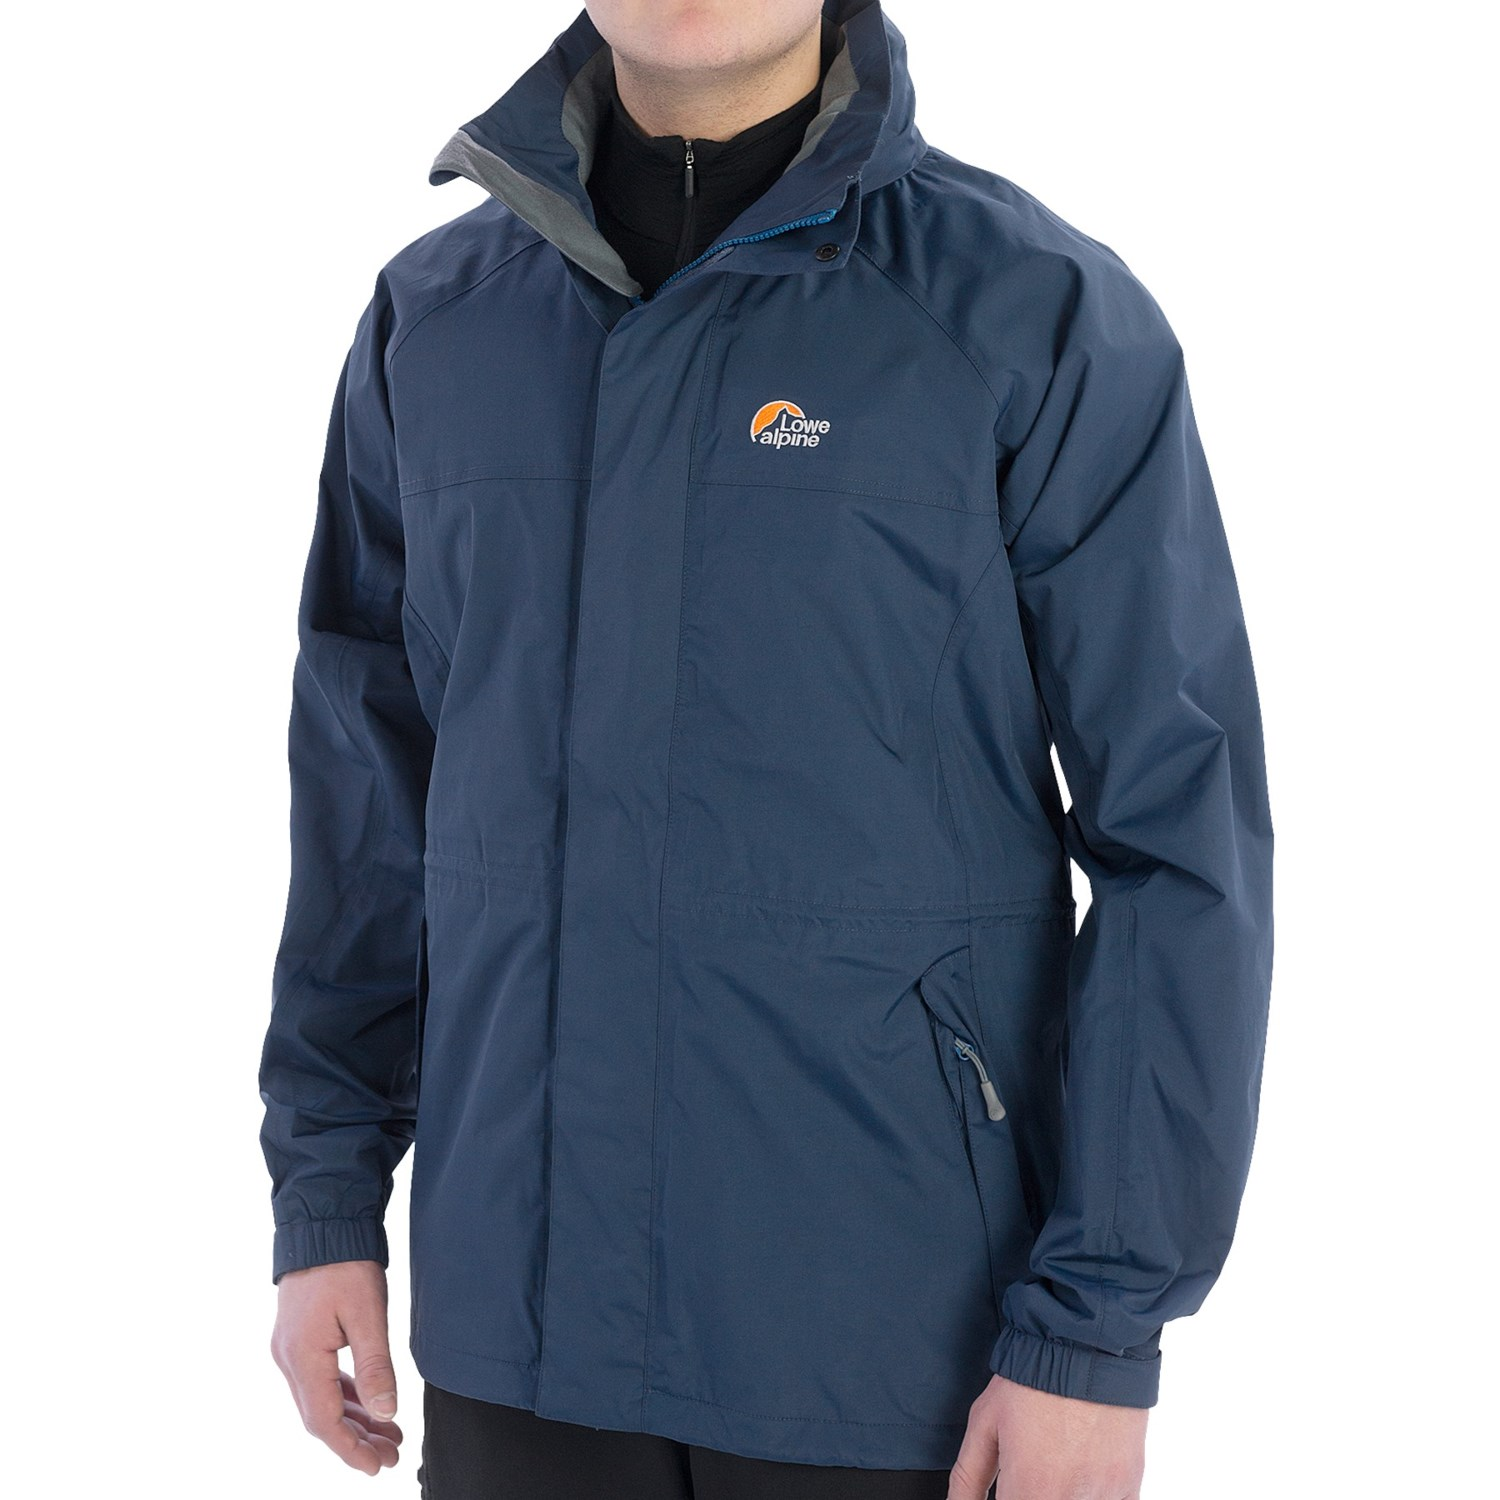 Alpine Design Clothing For Men Lowe Alpine Wind River Jacket